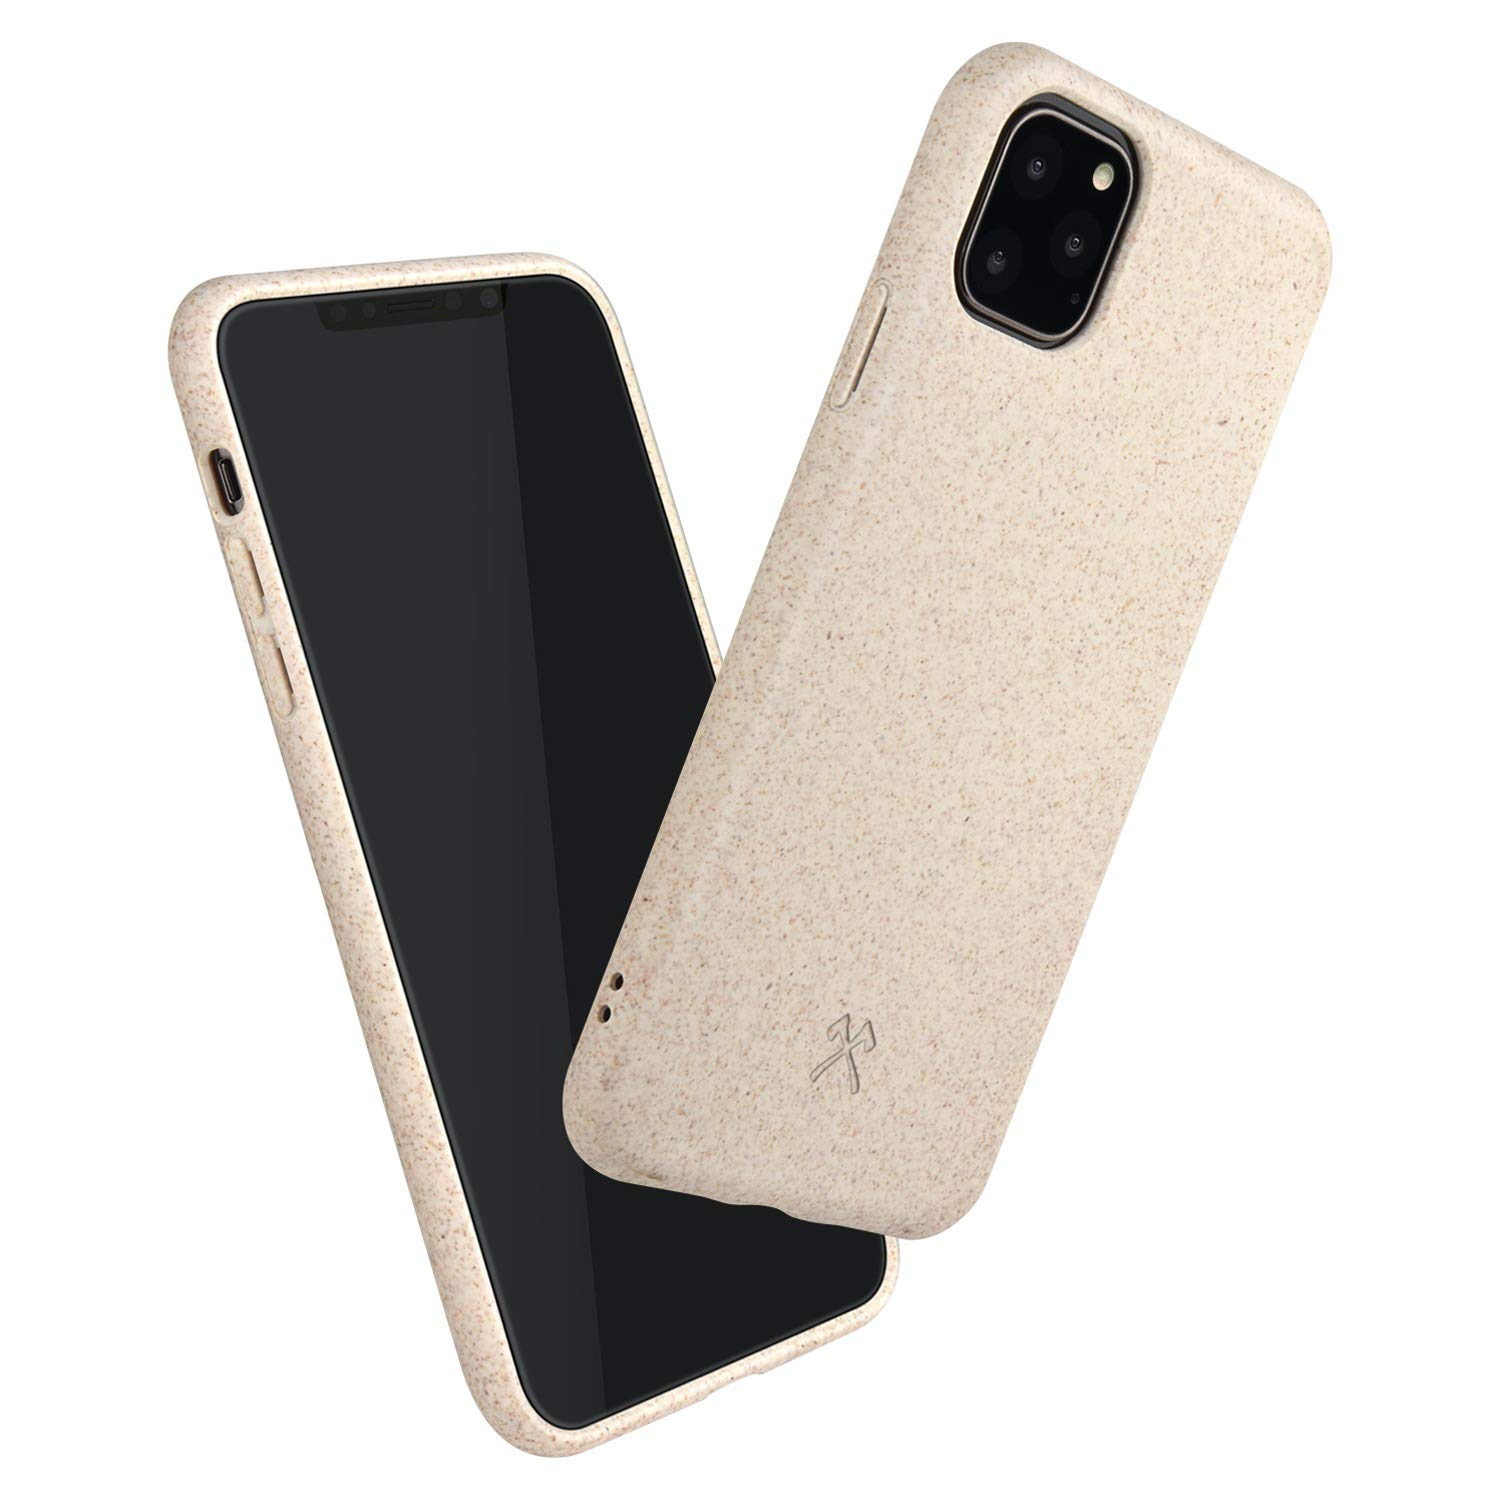 Woodcessories - Case Compatible with iPhone 11 Pro - Sustainable, Organic Case (White)